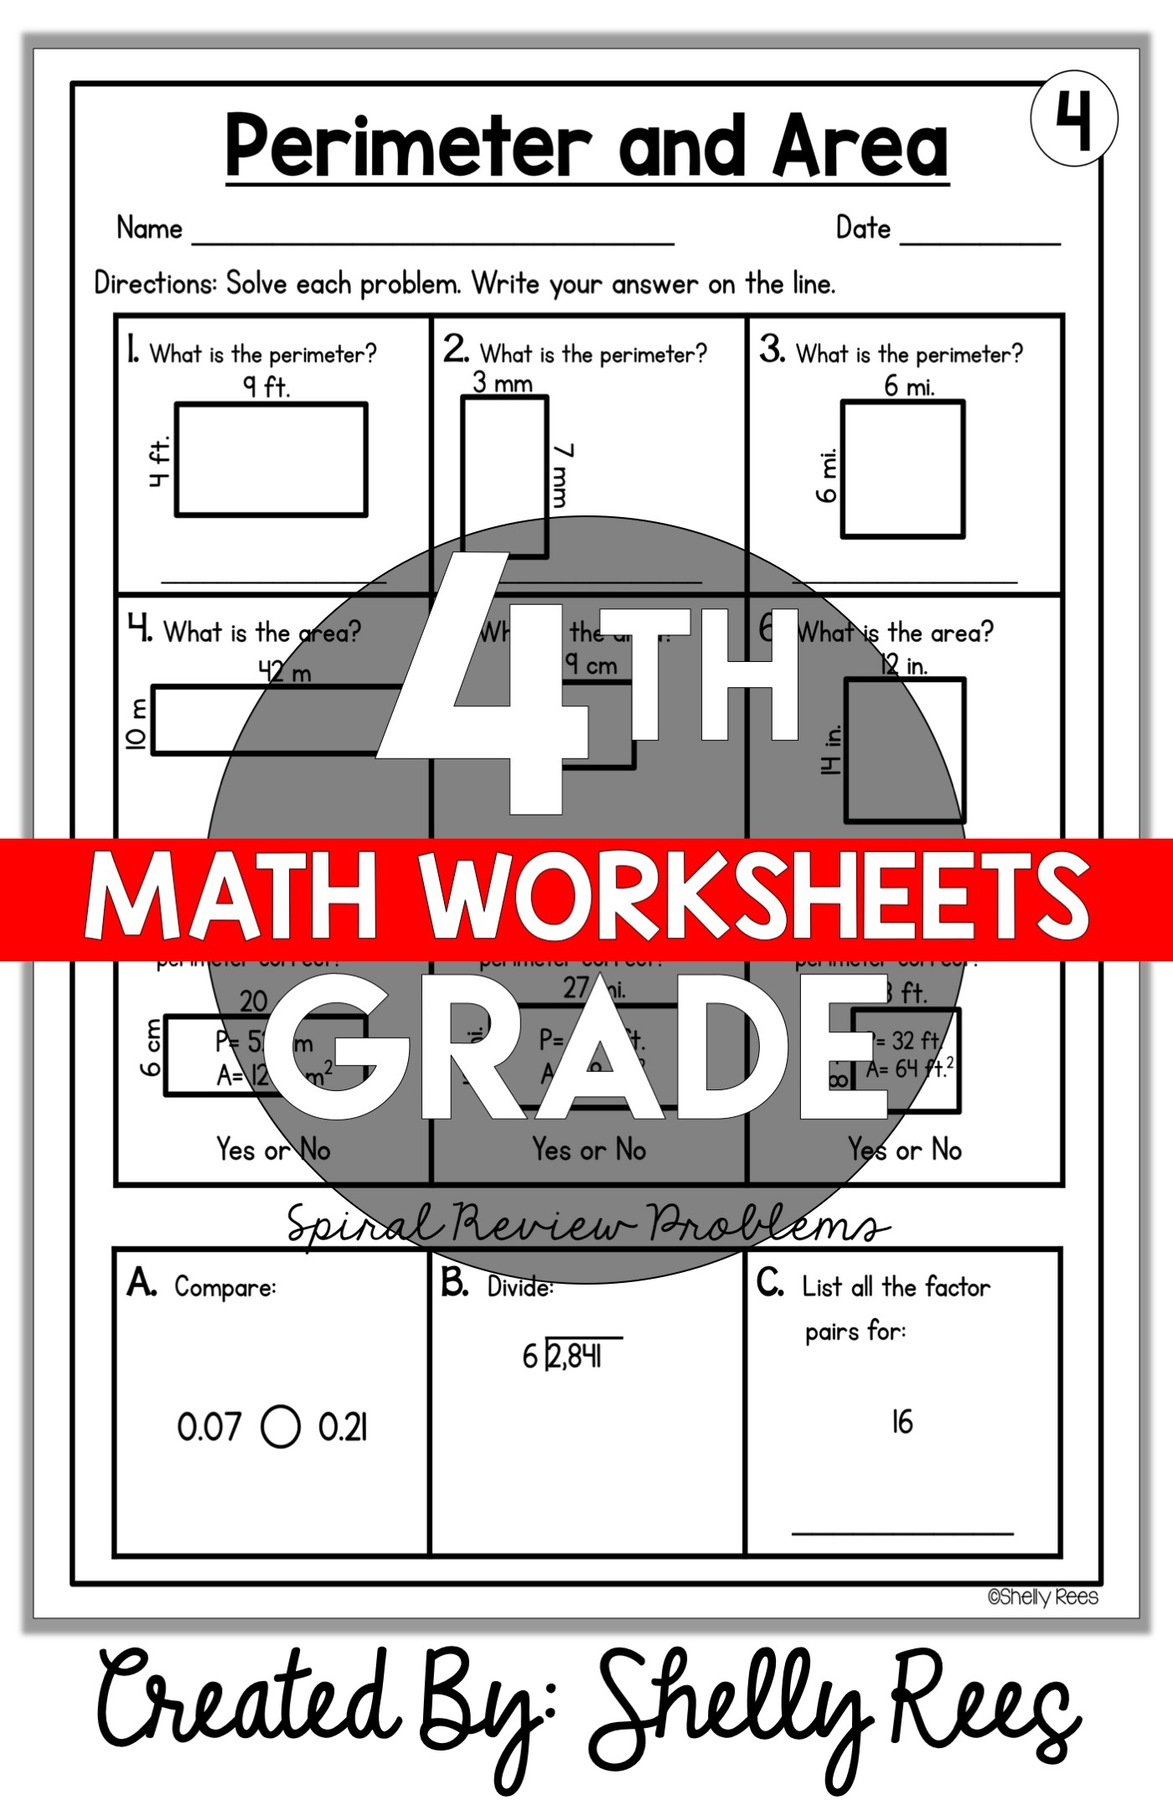 hight resolution of 4th Grade Math Worksheets Free and Printable - Appletastic Learning